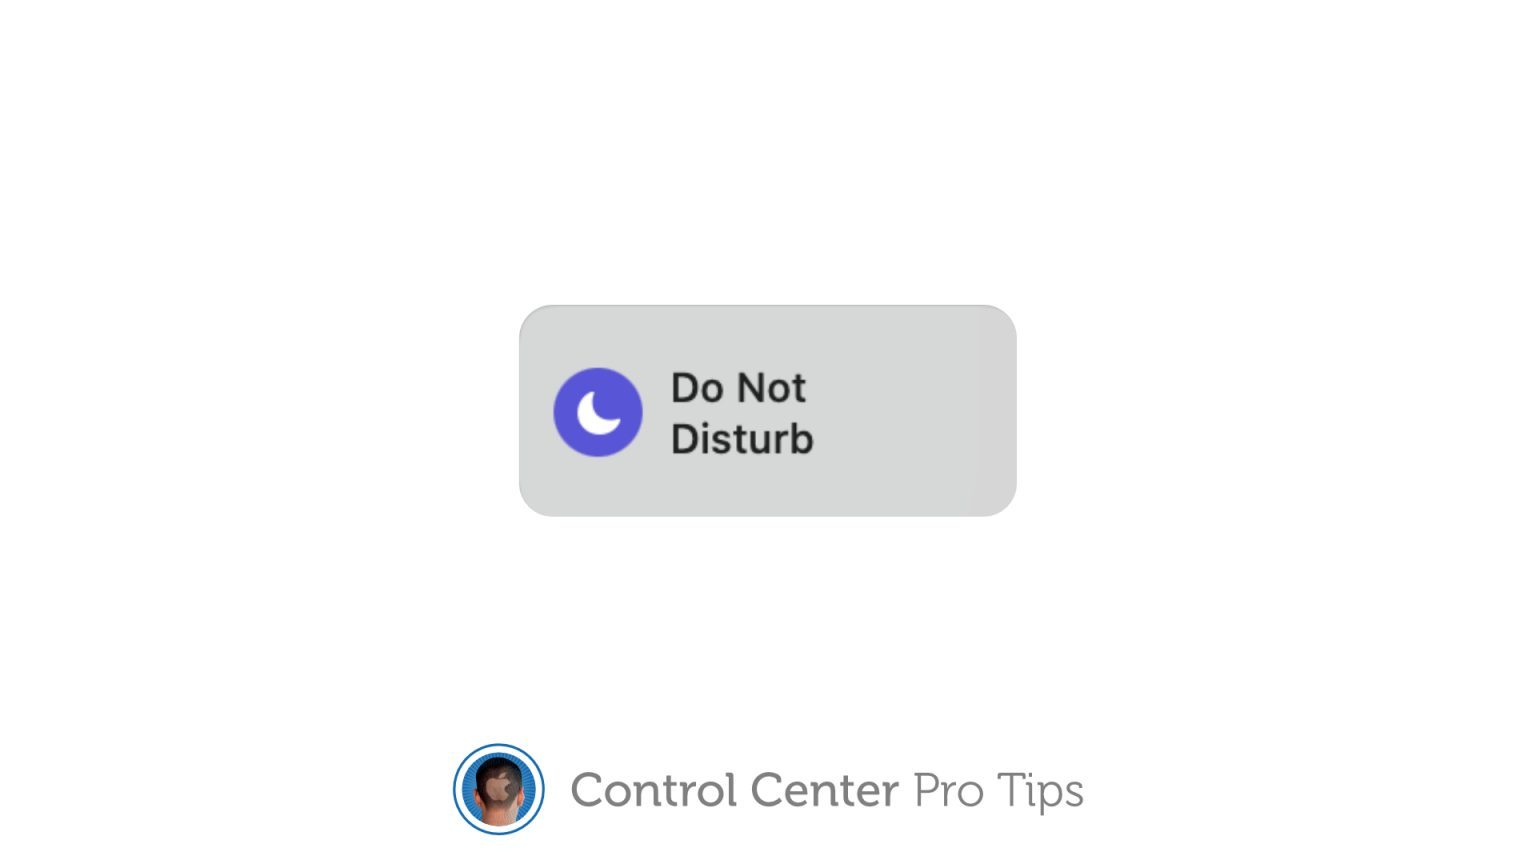 Toggle Do Not Disturb in Control Center